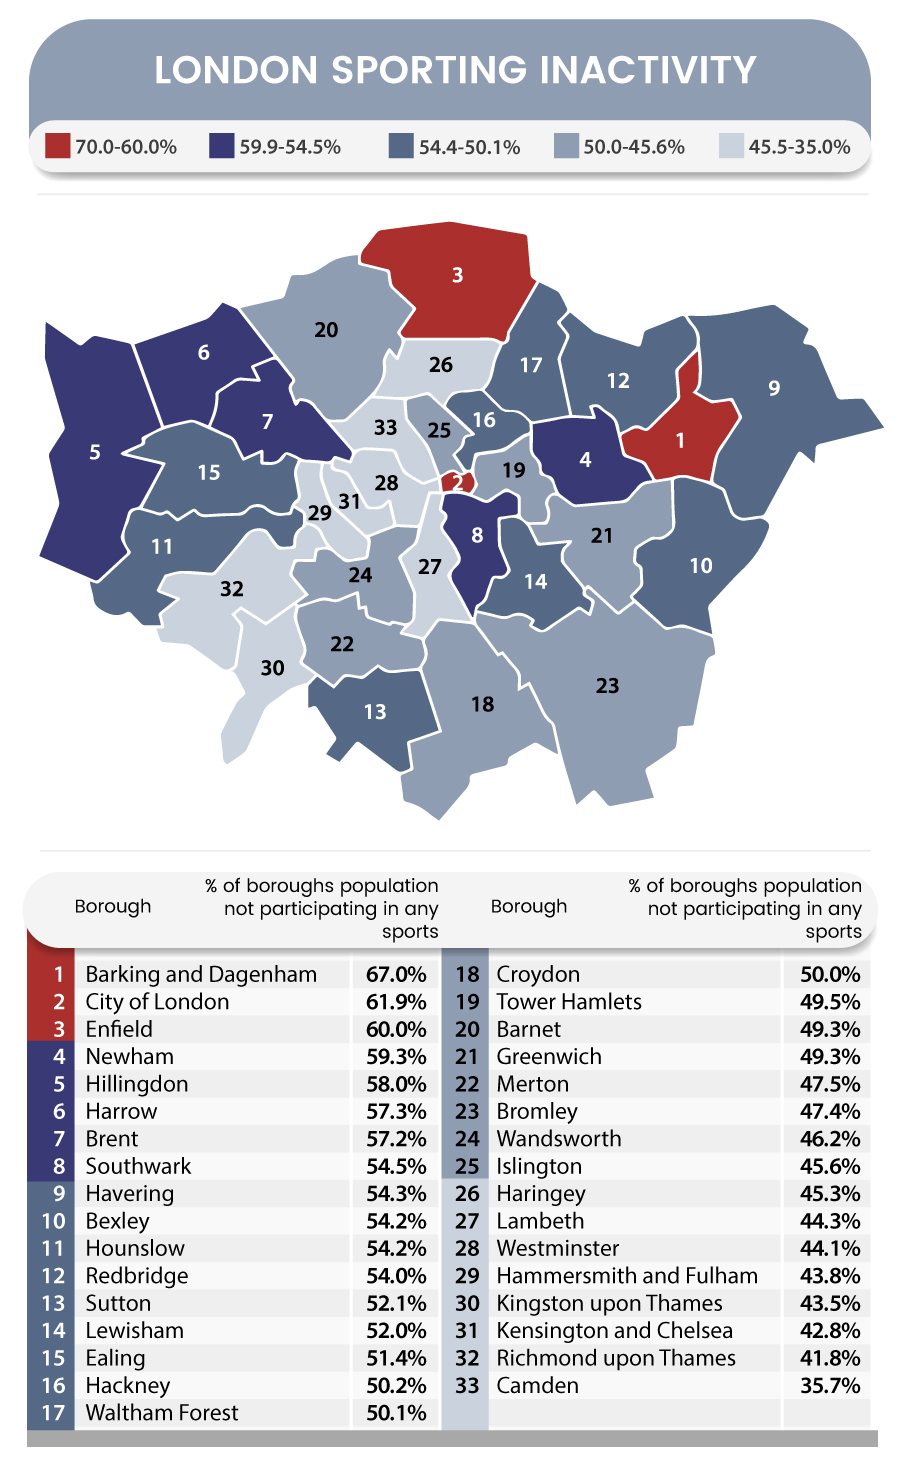 golf-support-london-sporting-inactivity-infographic-main